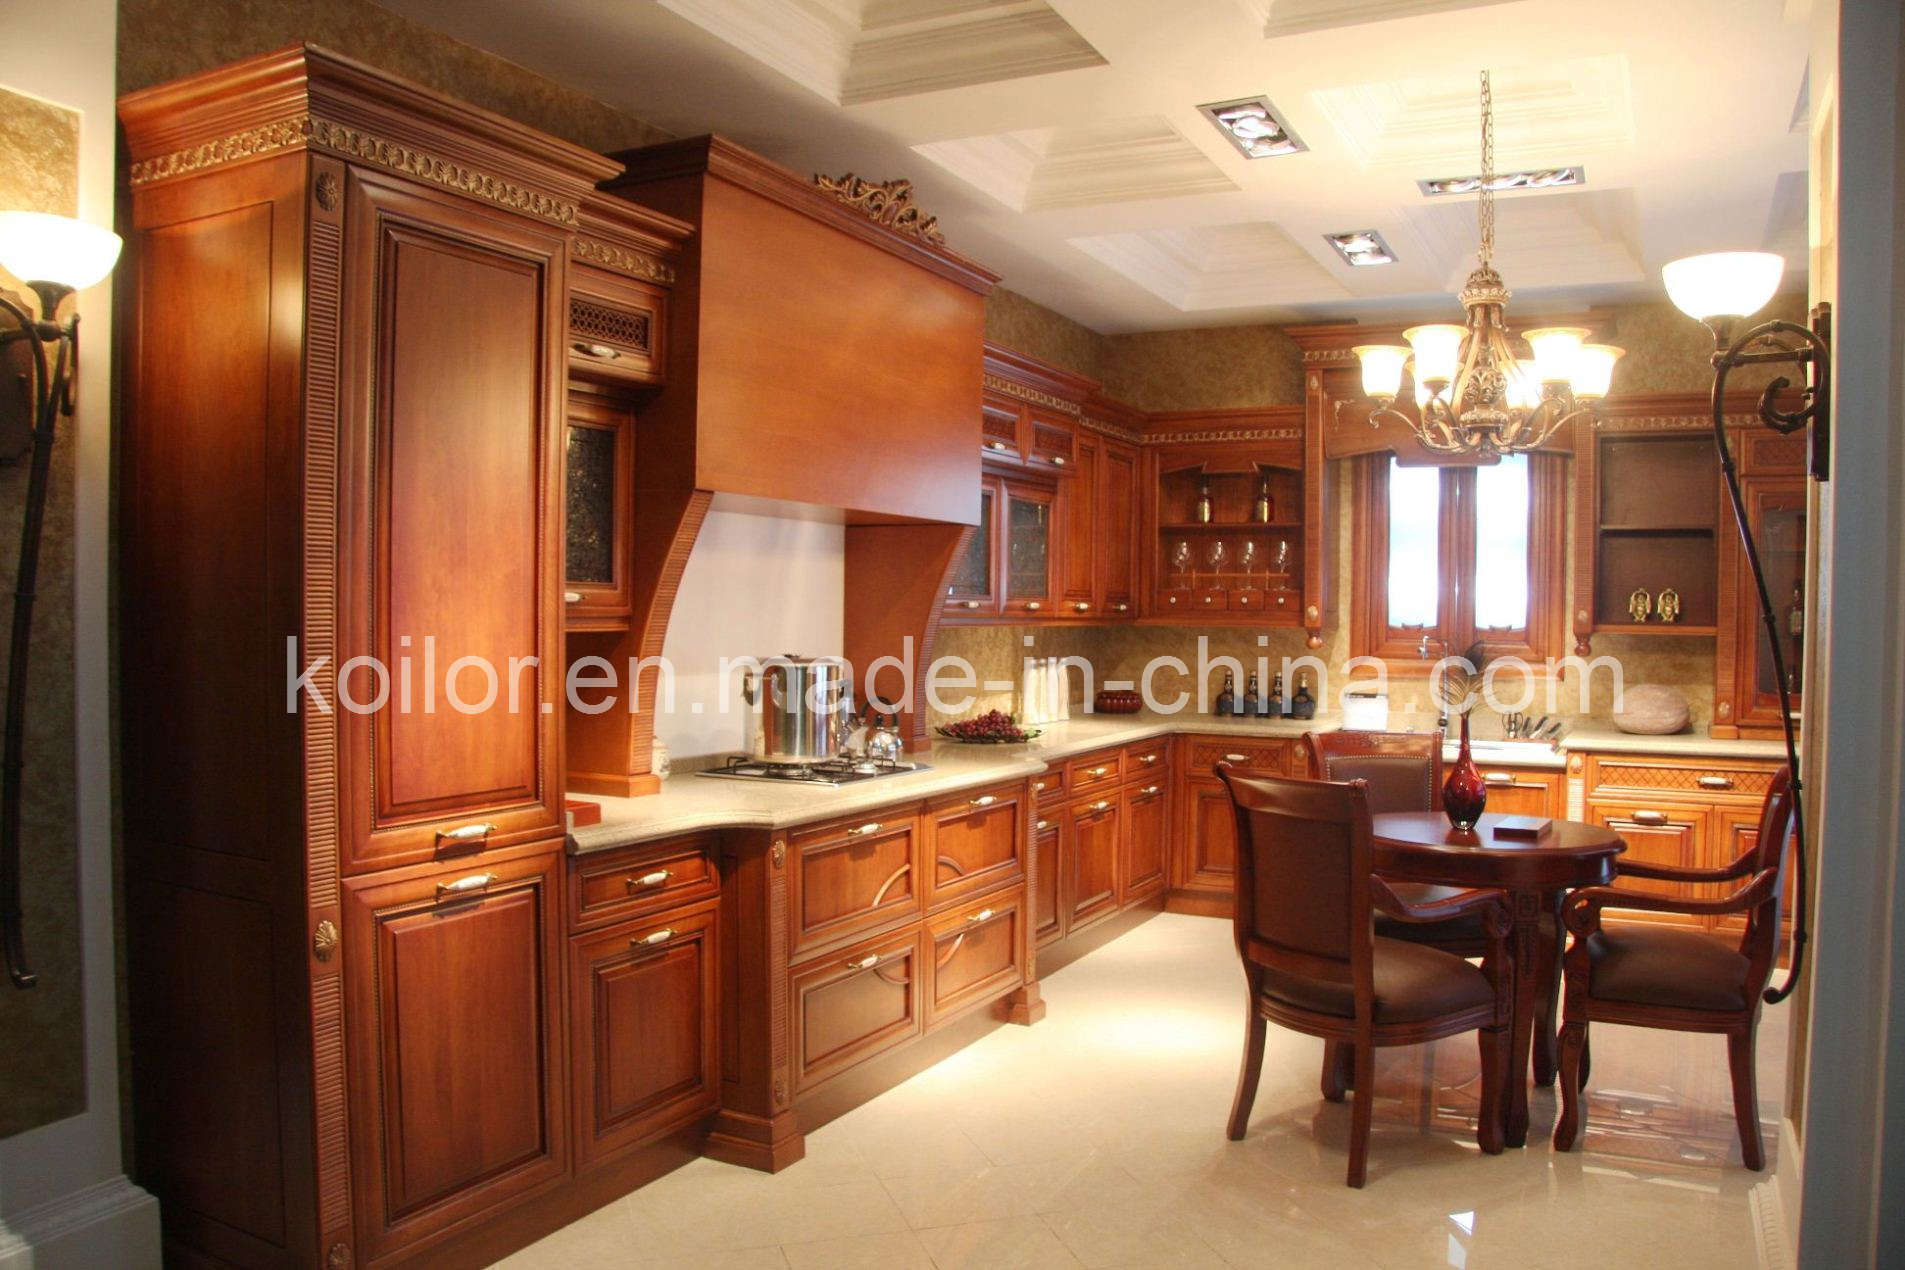 Remarkable Wood Kitchen Cabinets 1905 x 1270 · 272 kB · jpeg